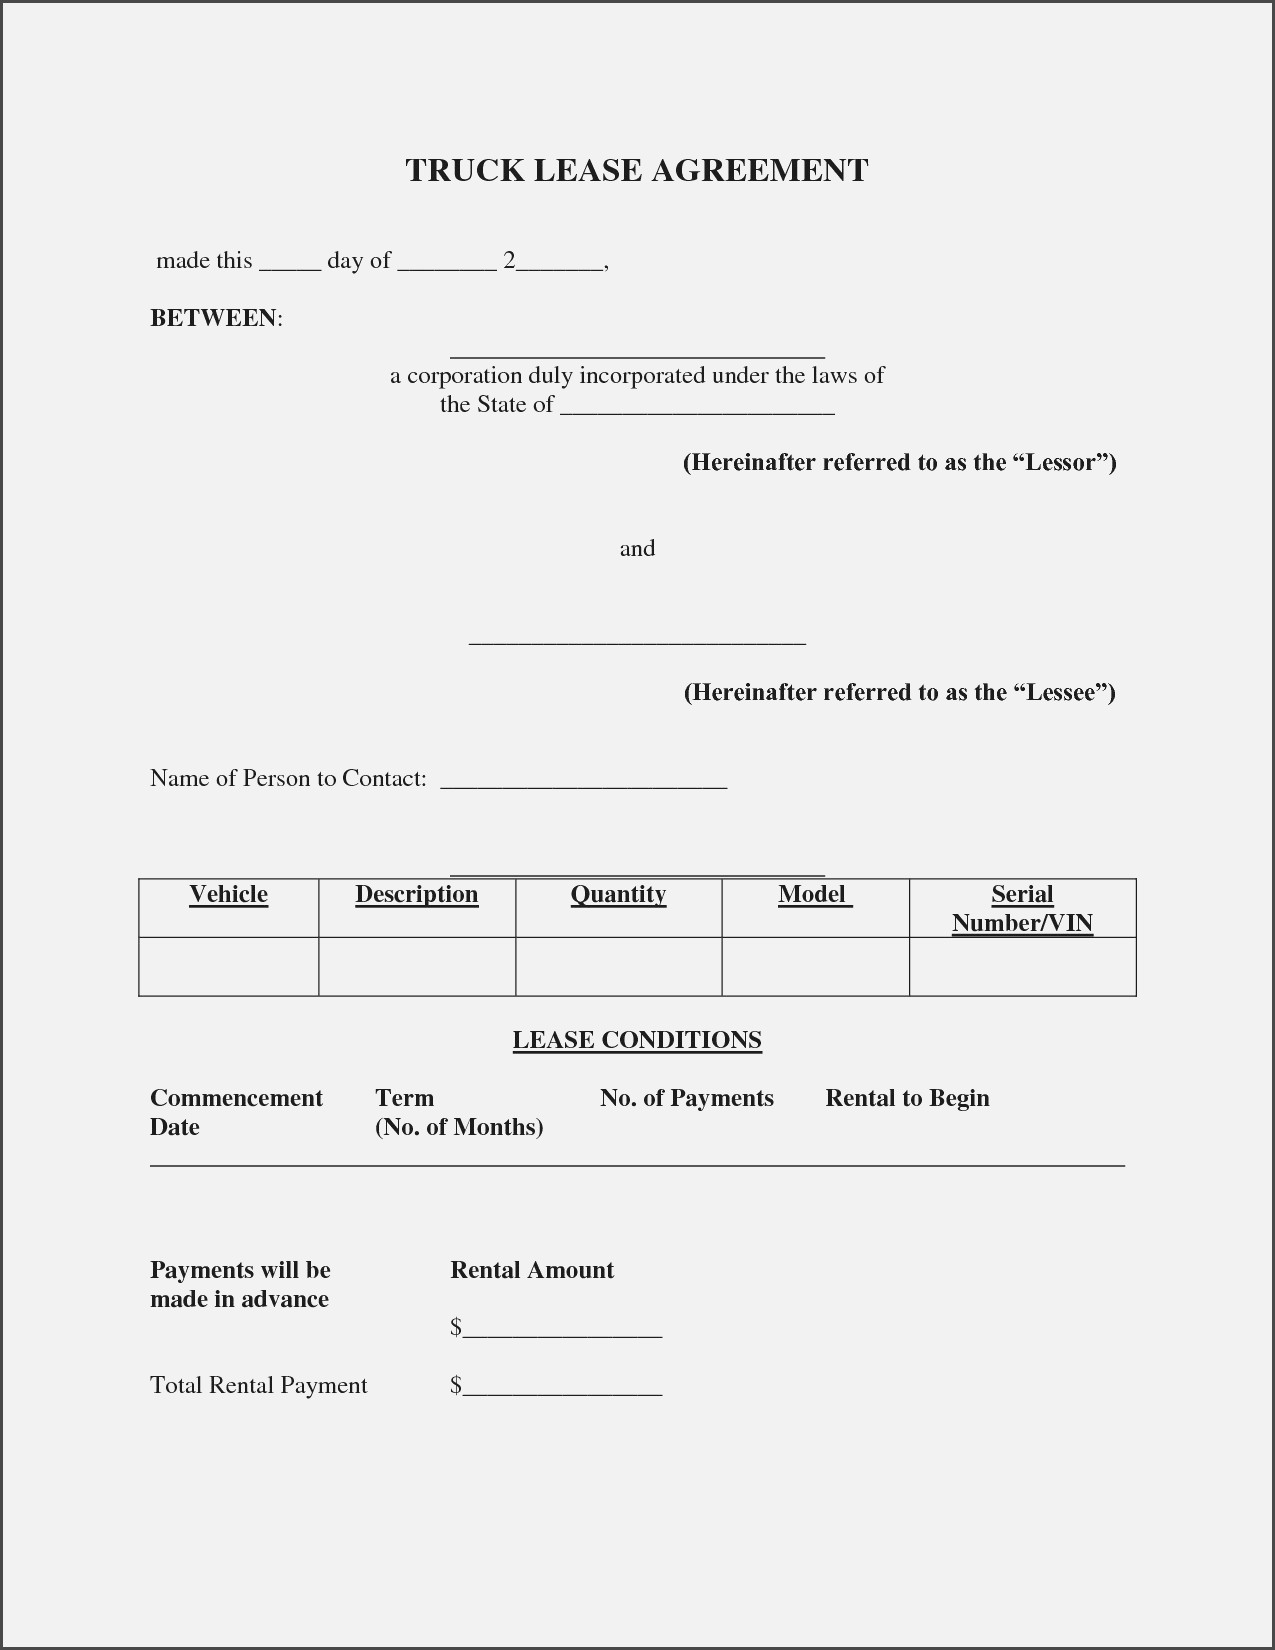 Tractor Trailer Lease Agreement Form